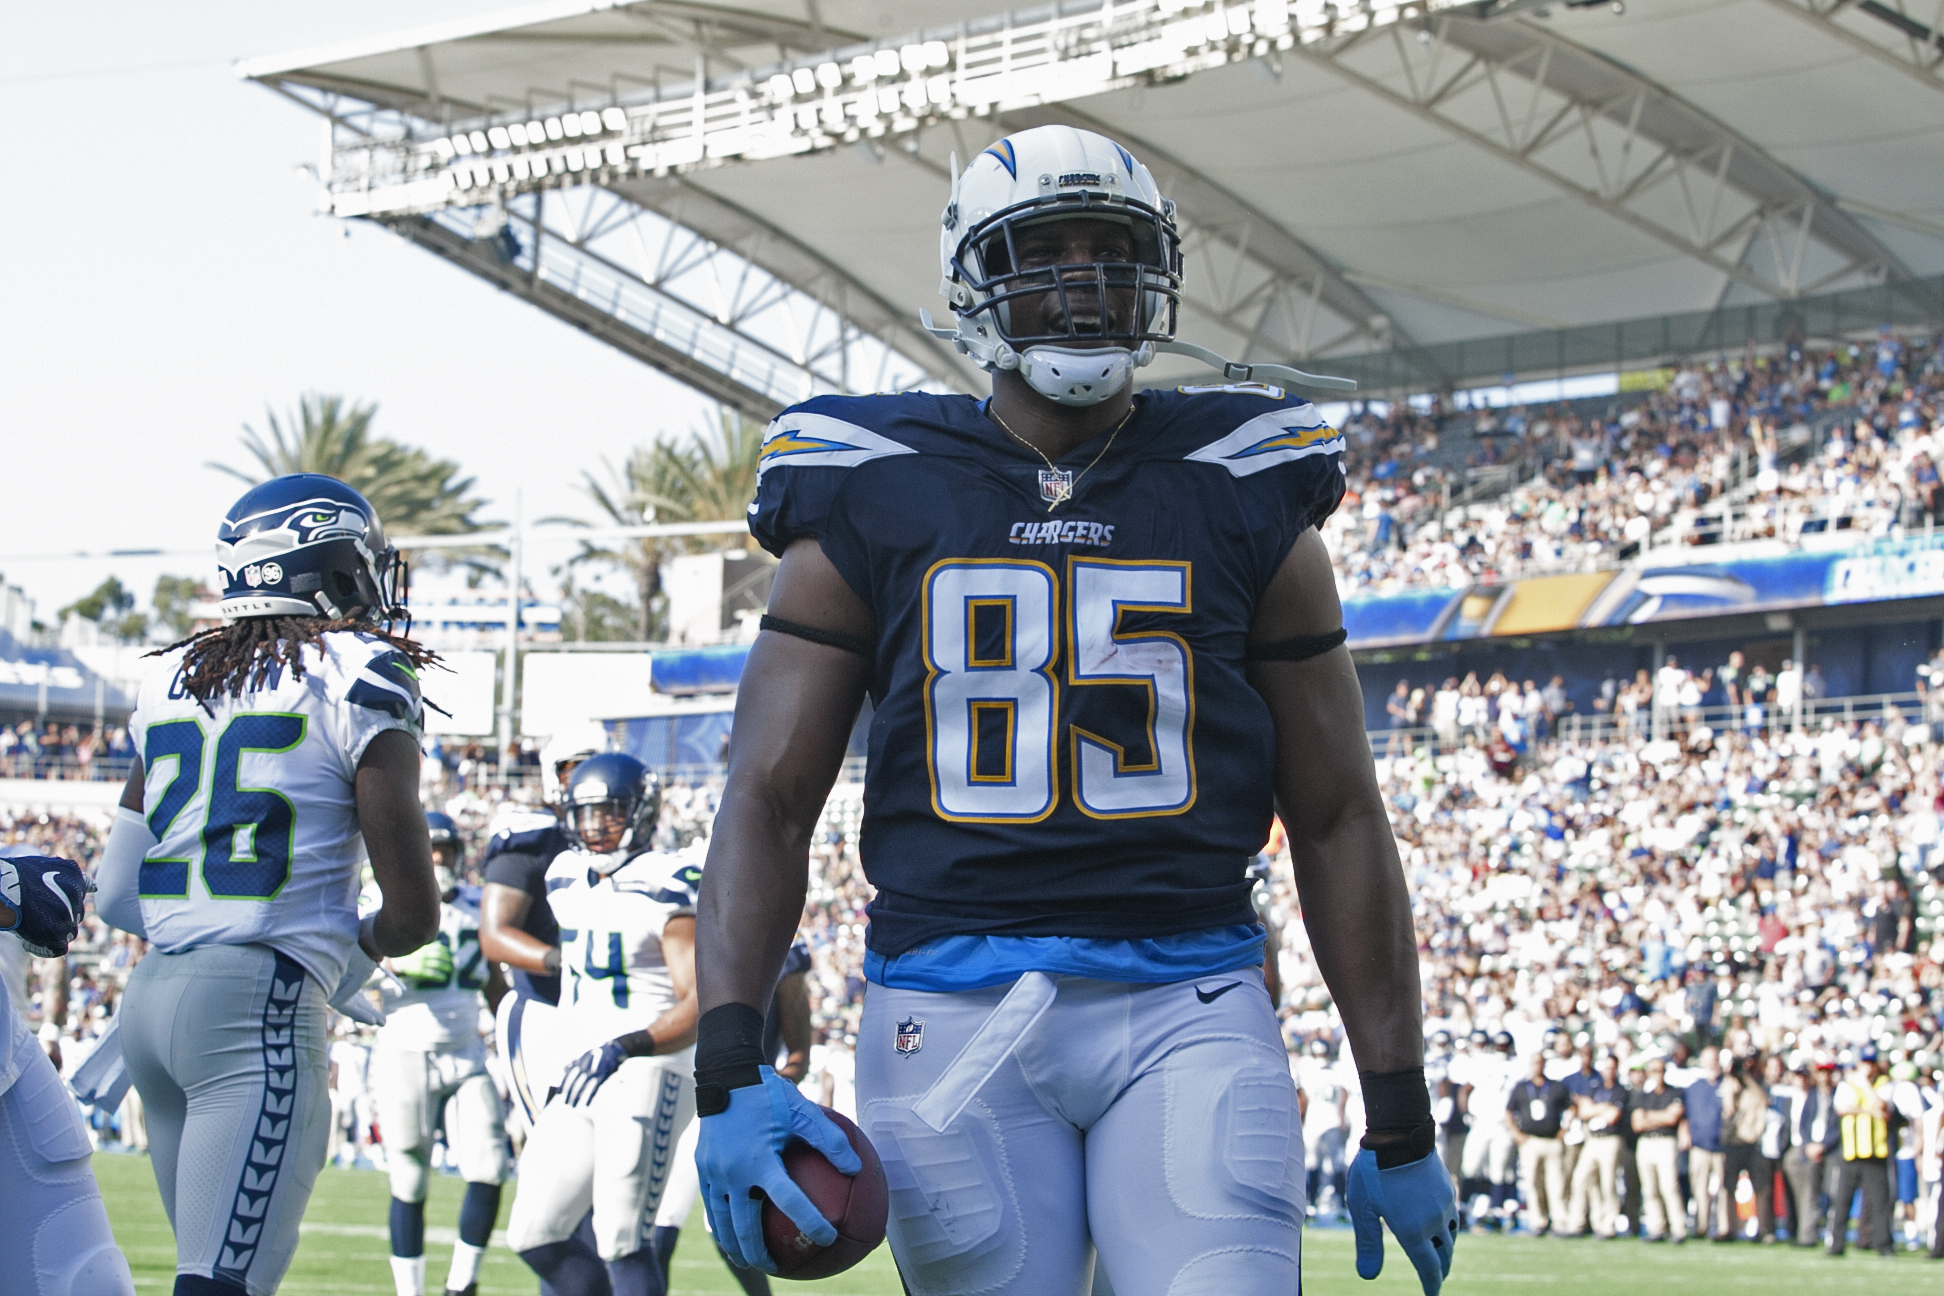 Los Angeles Chargers tight end Antonio Gates celebrates his touchdown against the Seattle Seahawks in preseason action. The Seahawks defeated the Chargers, 48-17. Photo by Astrud Reed/News4usonline